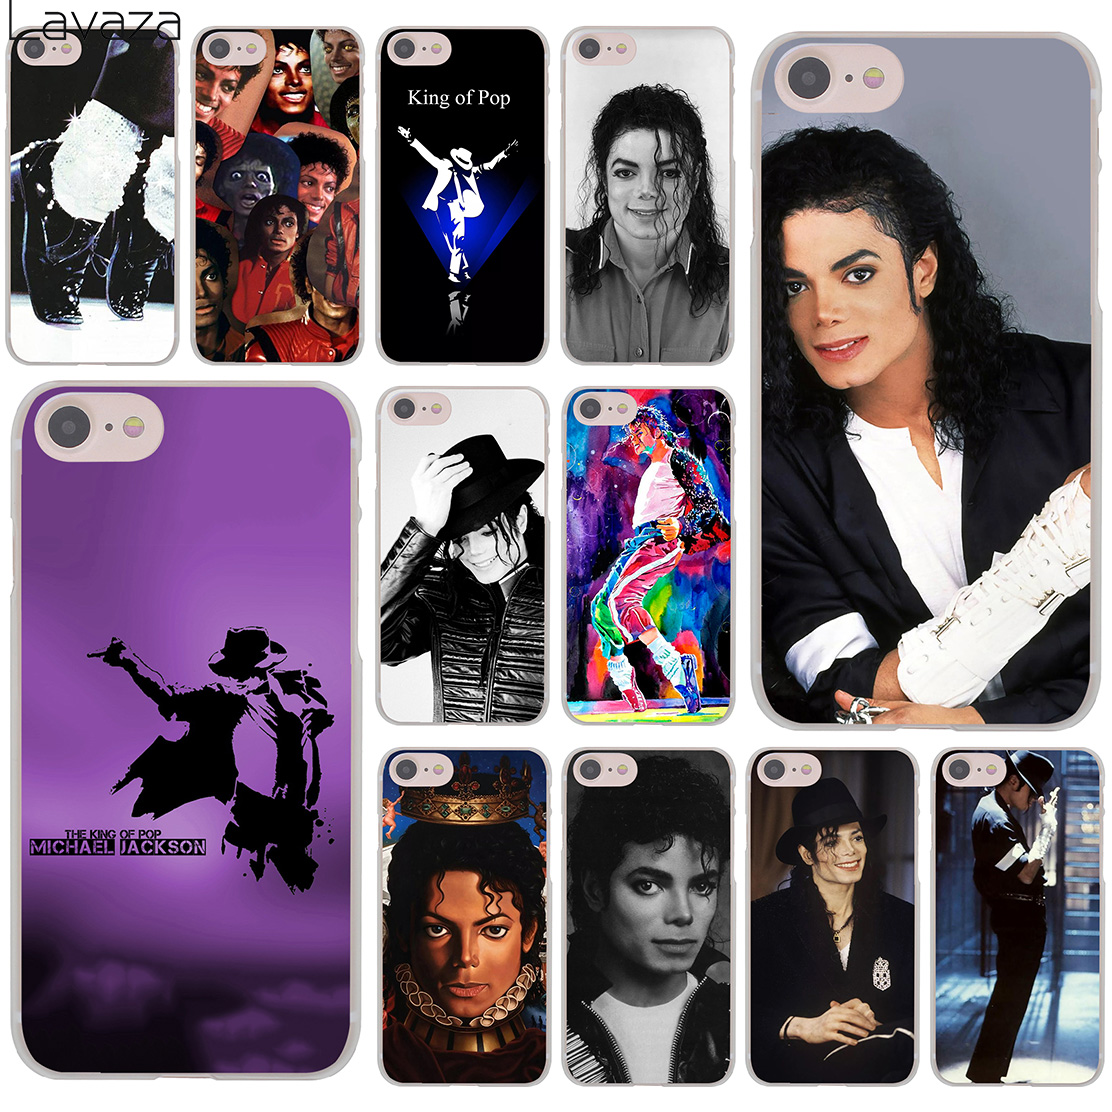 Lavaza Michael jackson dance Music Hard Phone Cover Fodral för iPhone XR X 11 Pro XS Max 8 7 6 6S 5 5S SE 4S 4 10